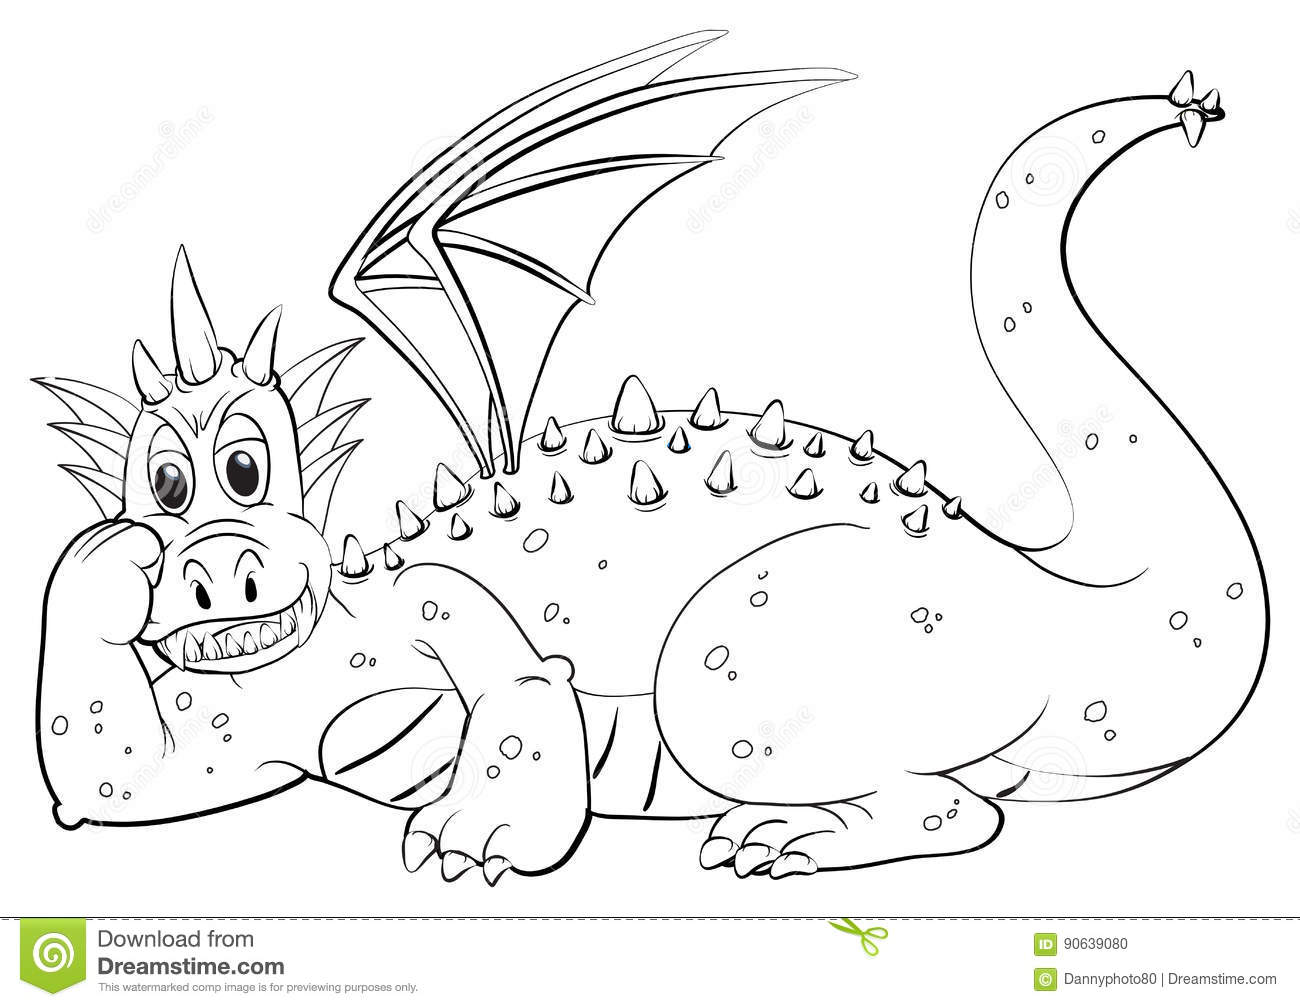 animal outline for dragon with wings - Dragon Outline